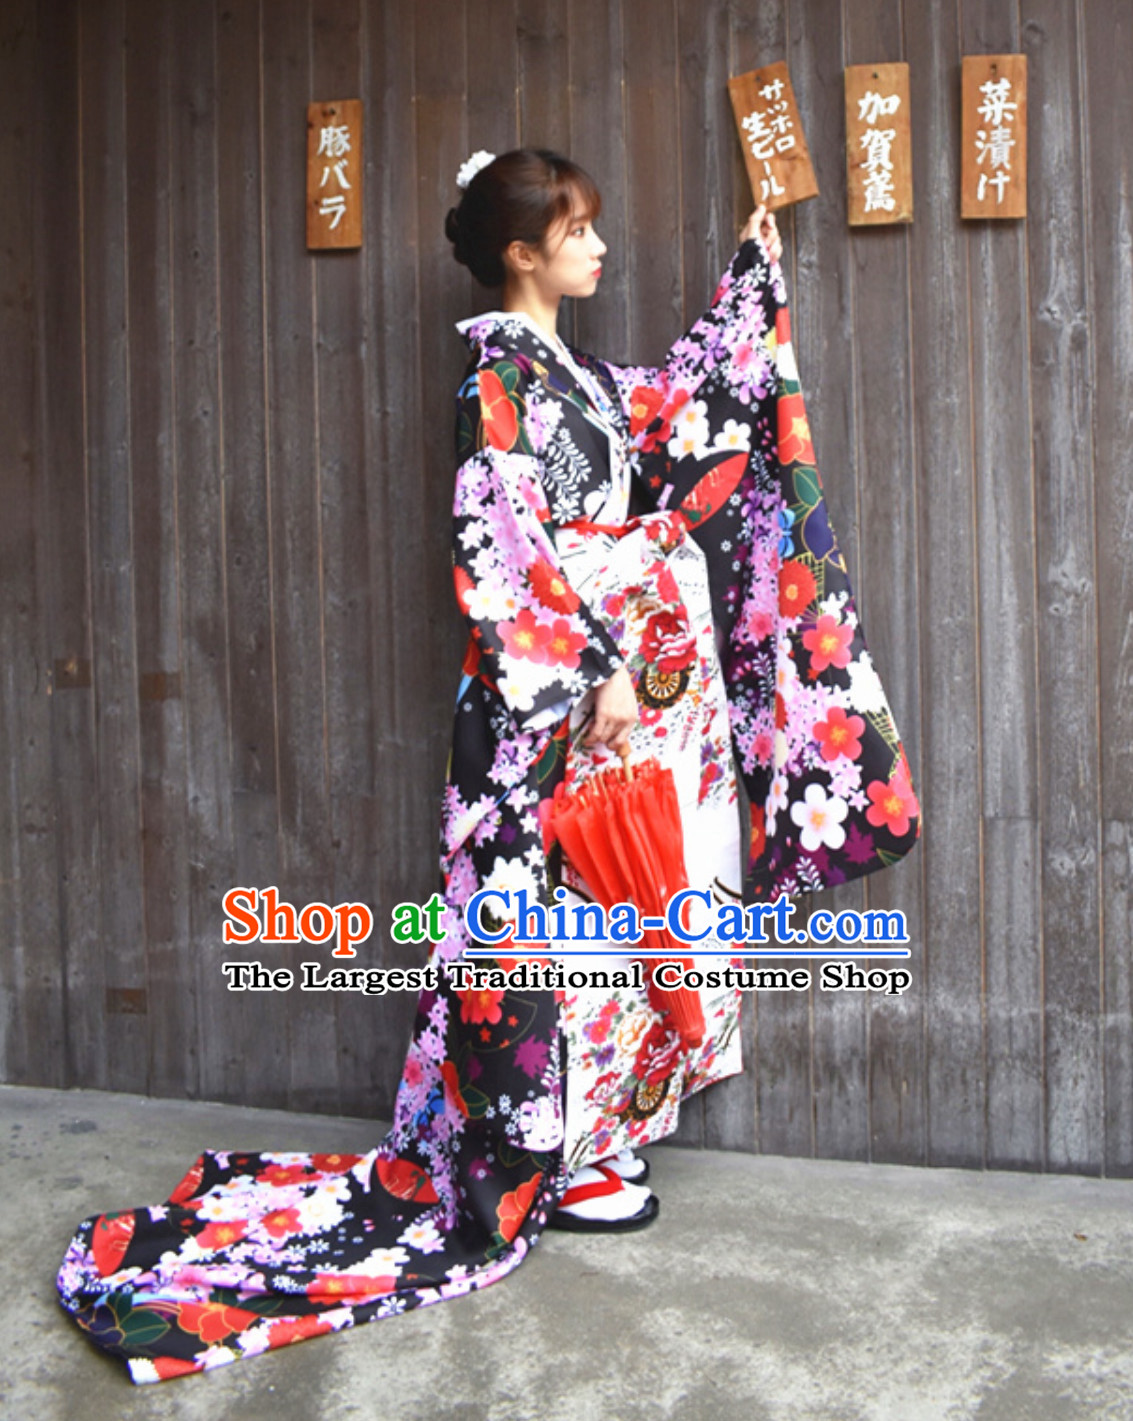 Classical Asian Japan Clothing Japanese Fashion Apparel Printing Furisode Kimono Costume Complete Set for Women